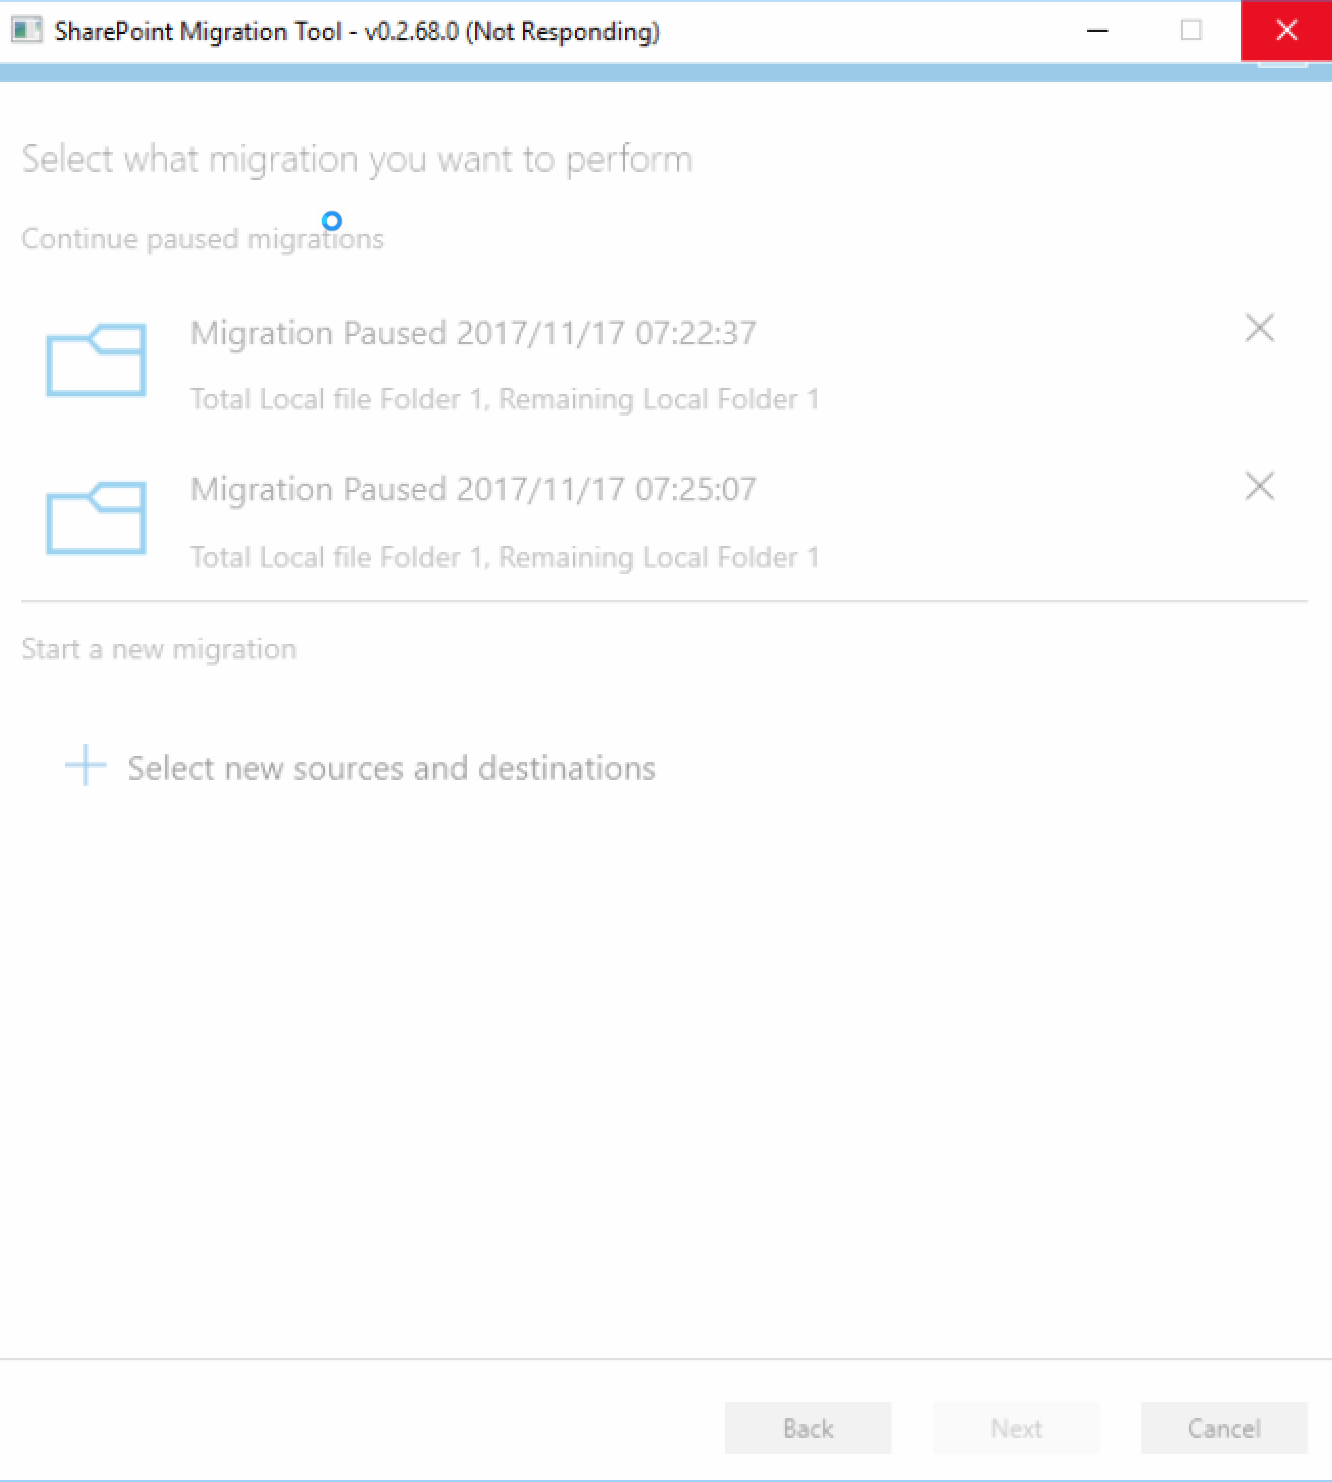 Introducing the Point Migration Tool from Microsoft Page 3